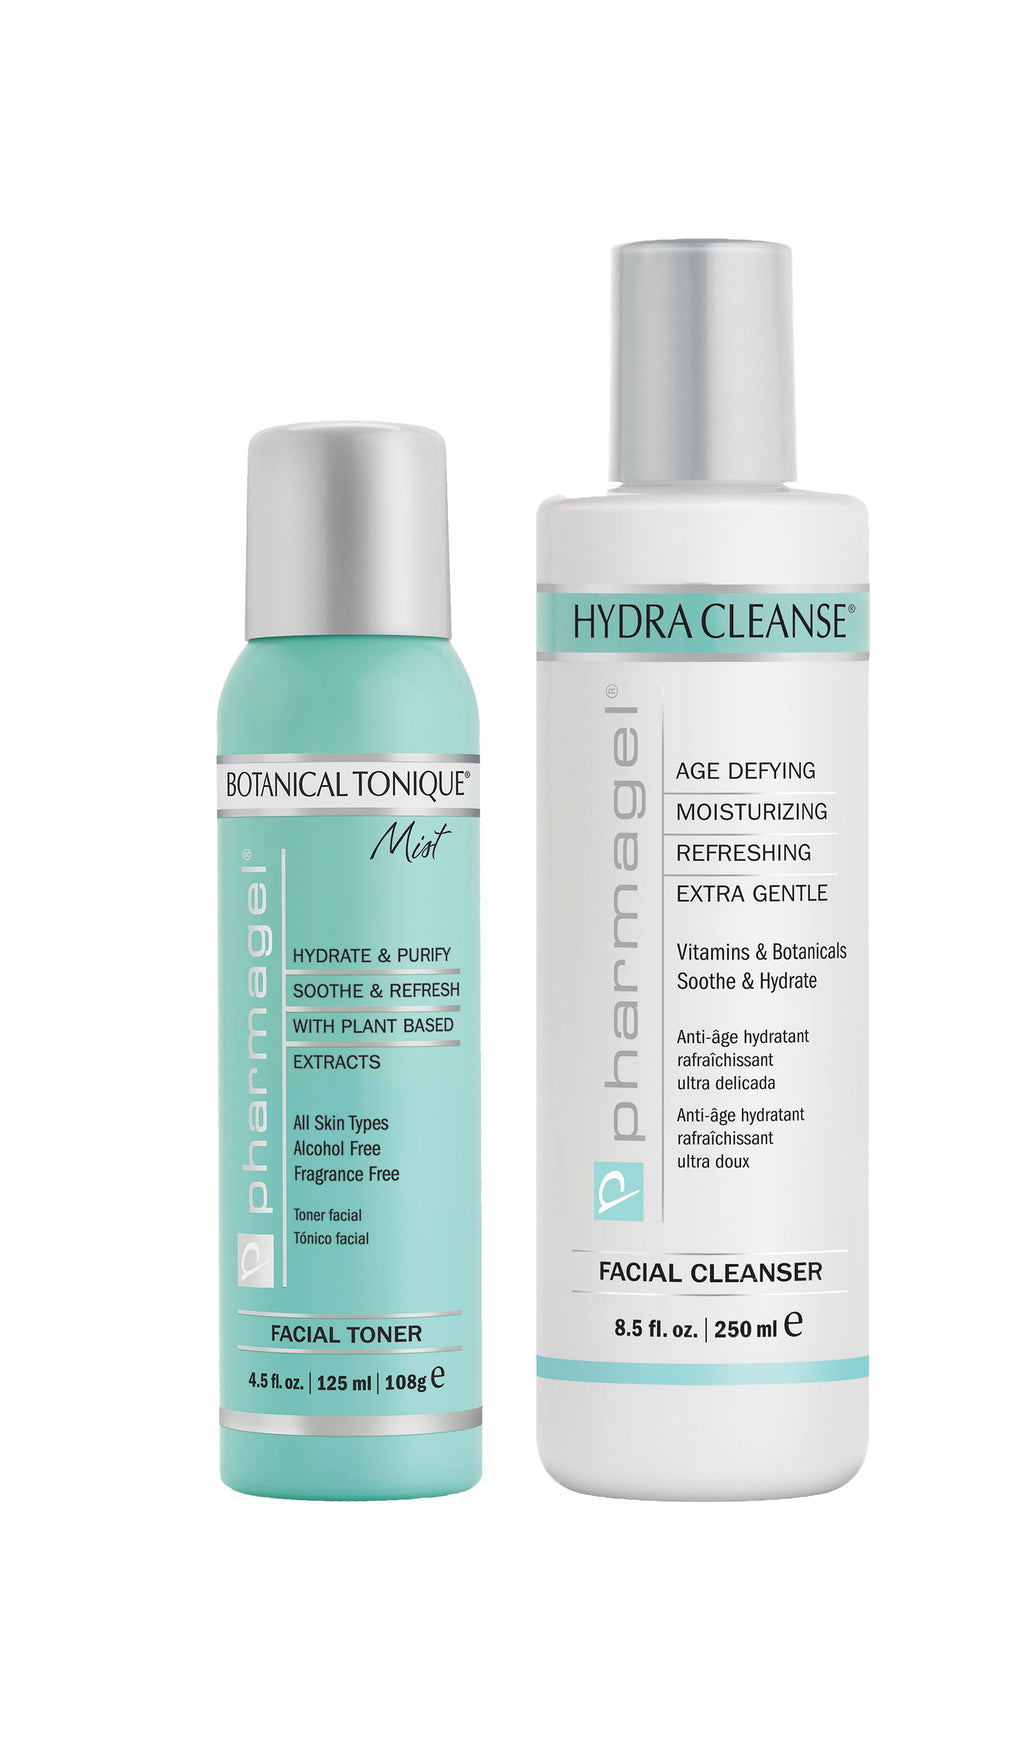 Botanical Tonique Mist & Hydra Cleanse Duo